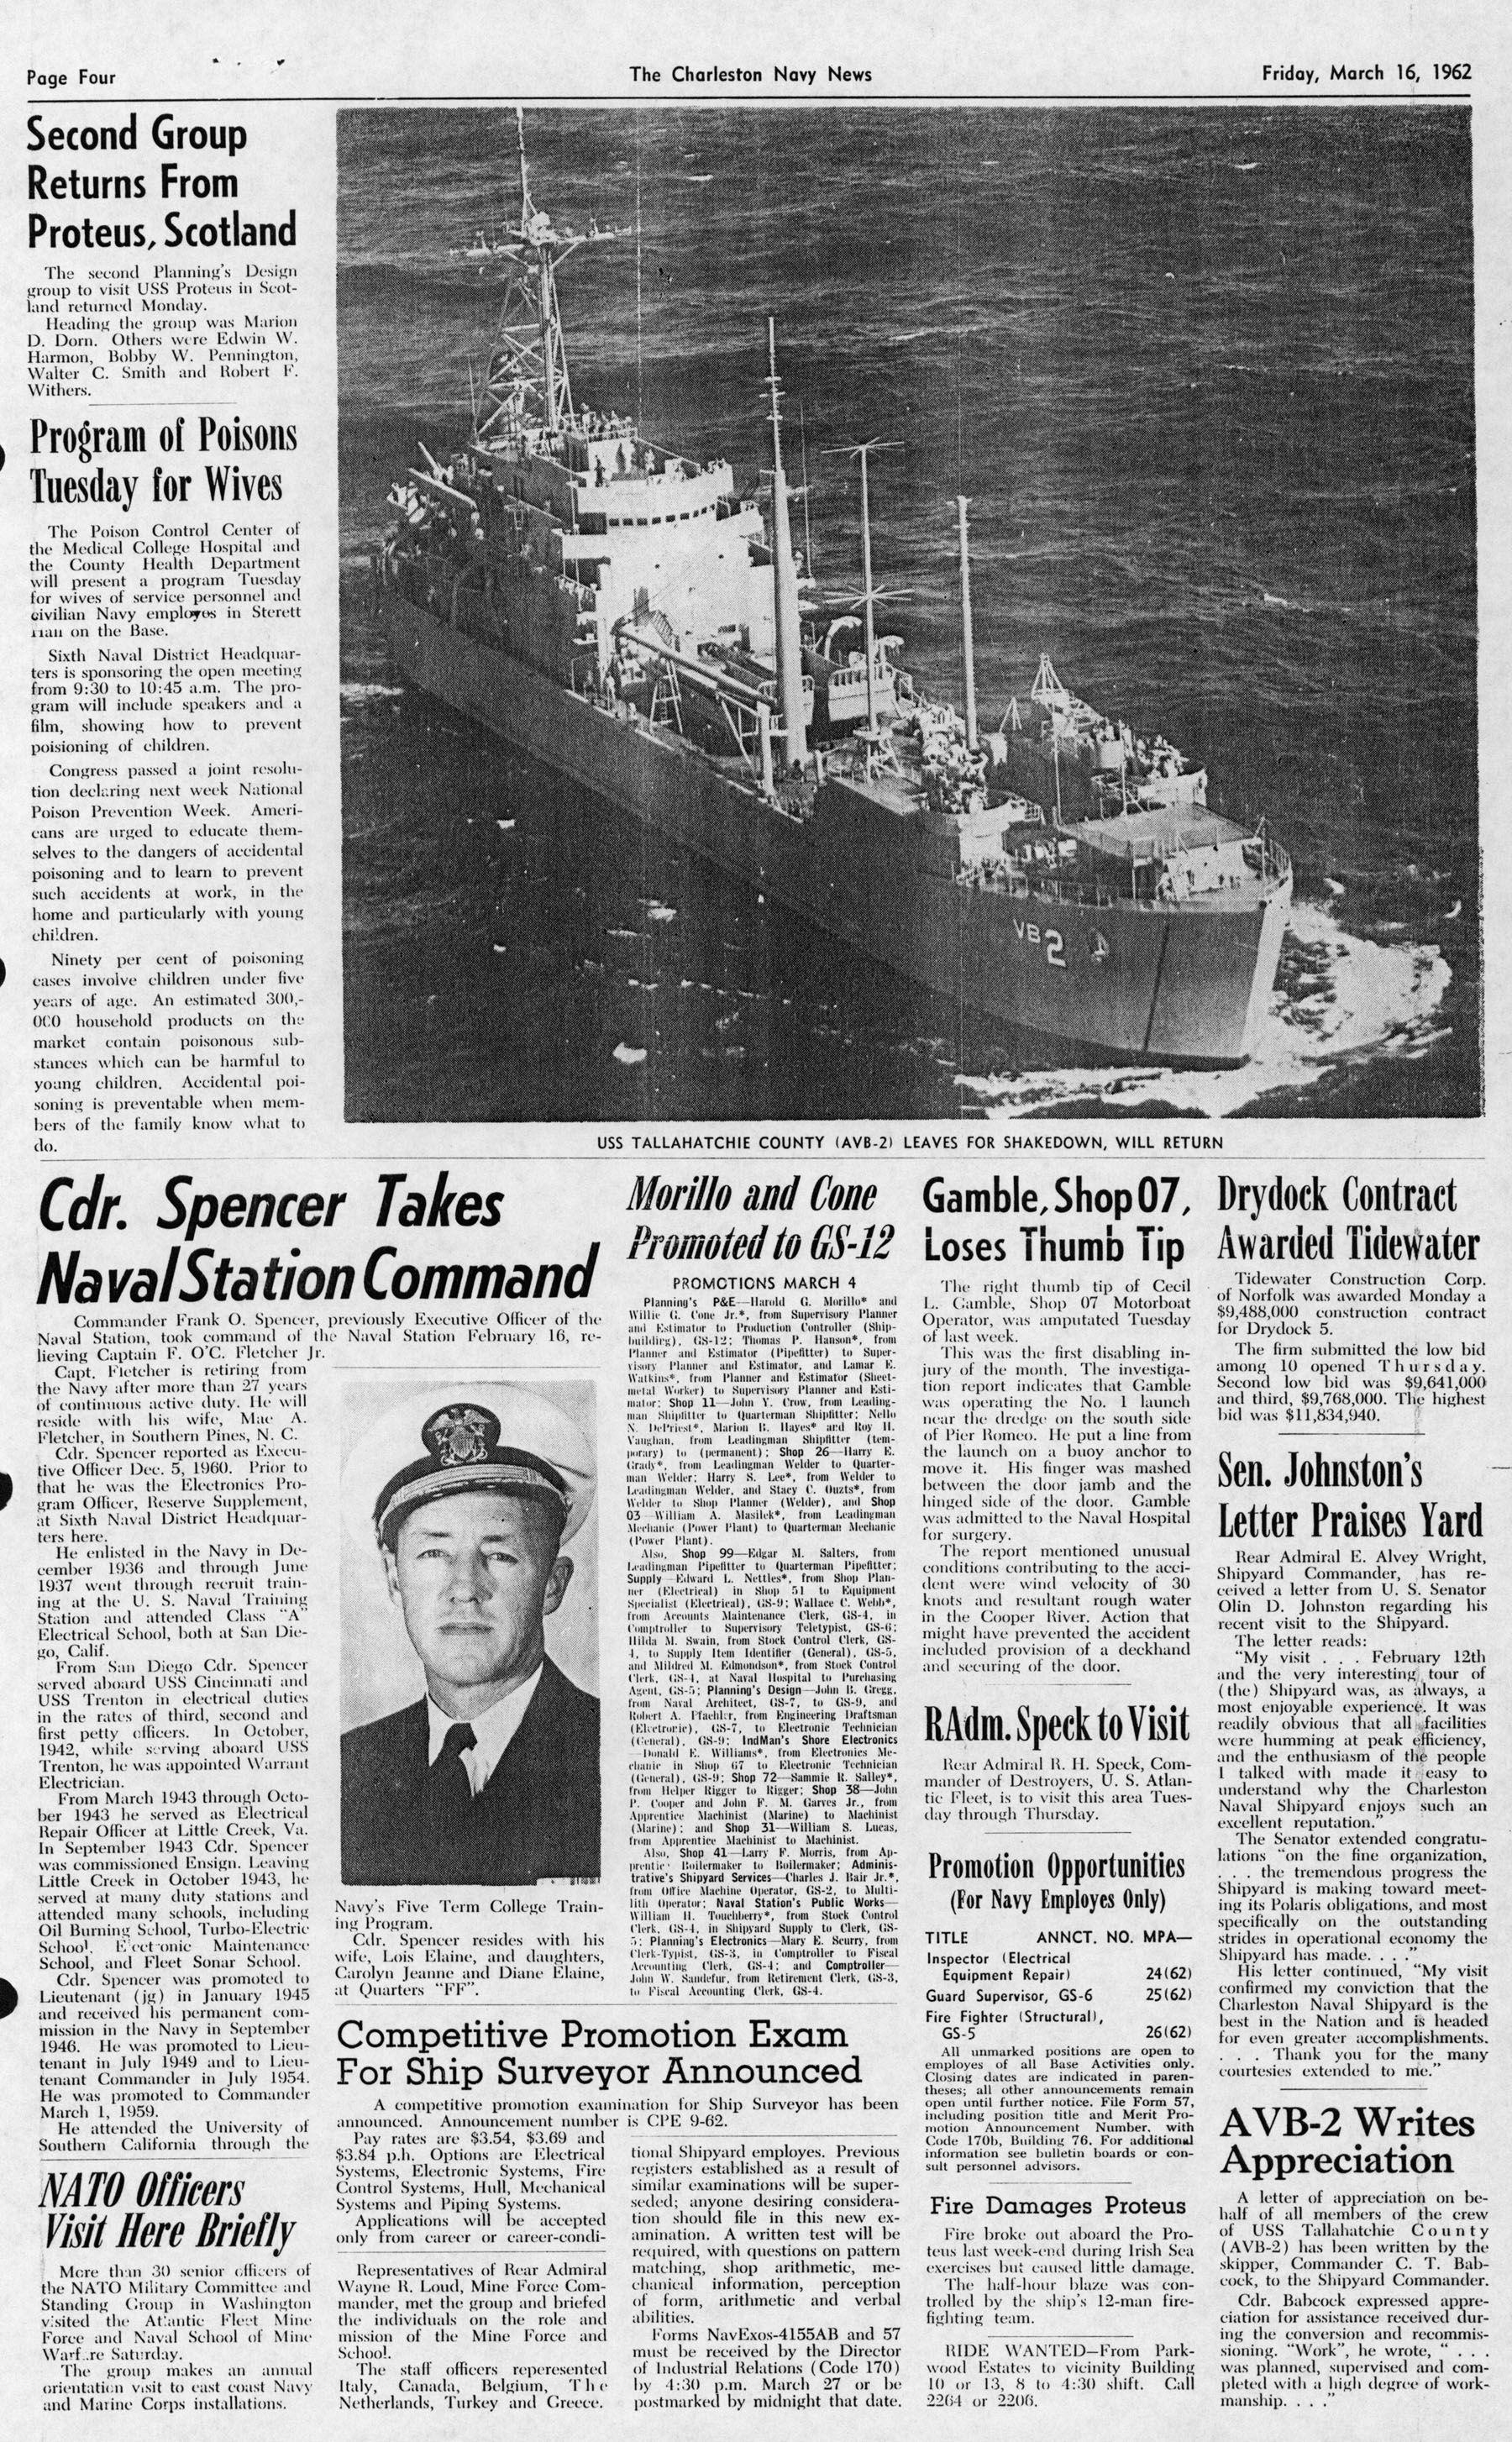 The Charleston Navy News, Volume 20, Edition 18, page iv